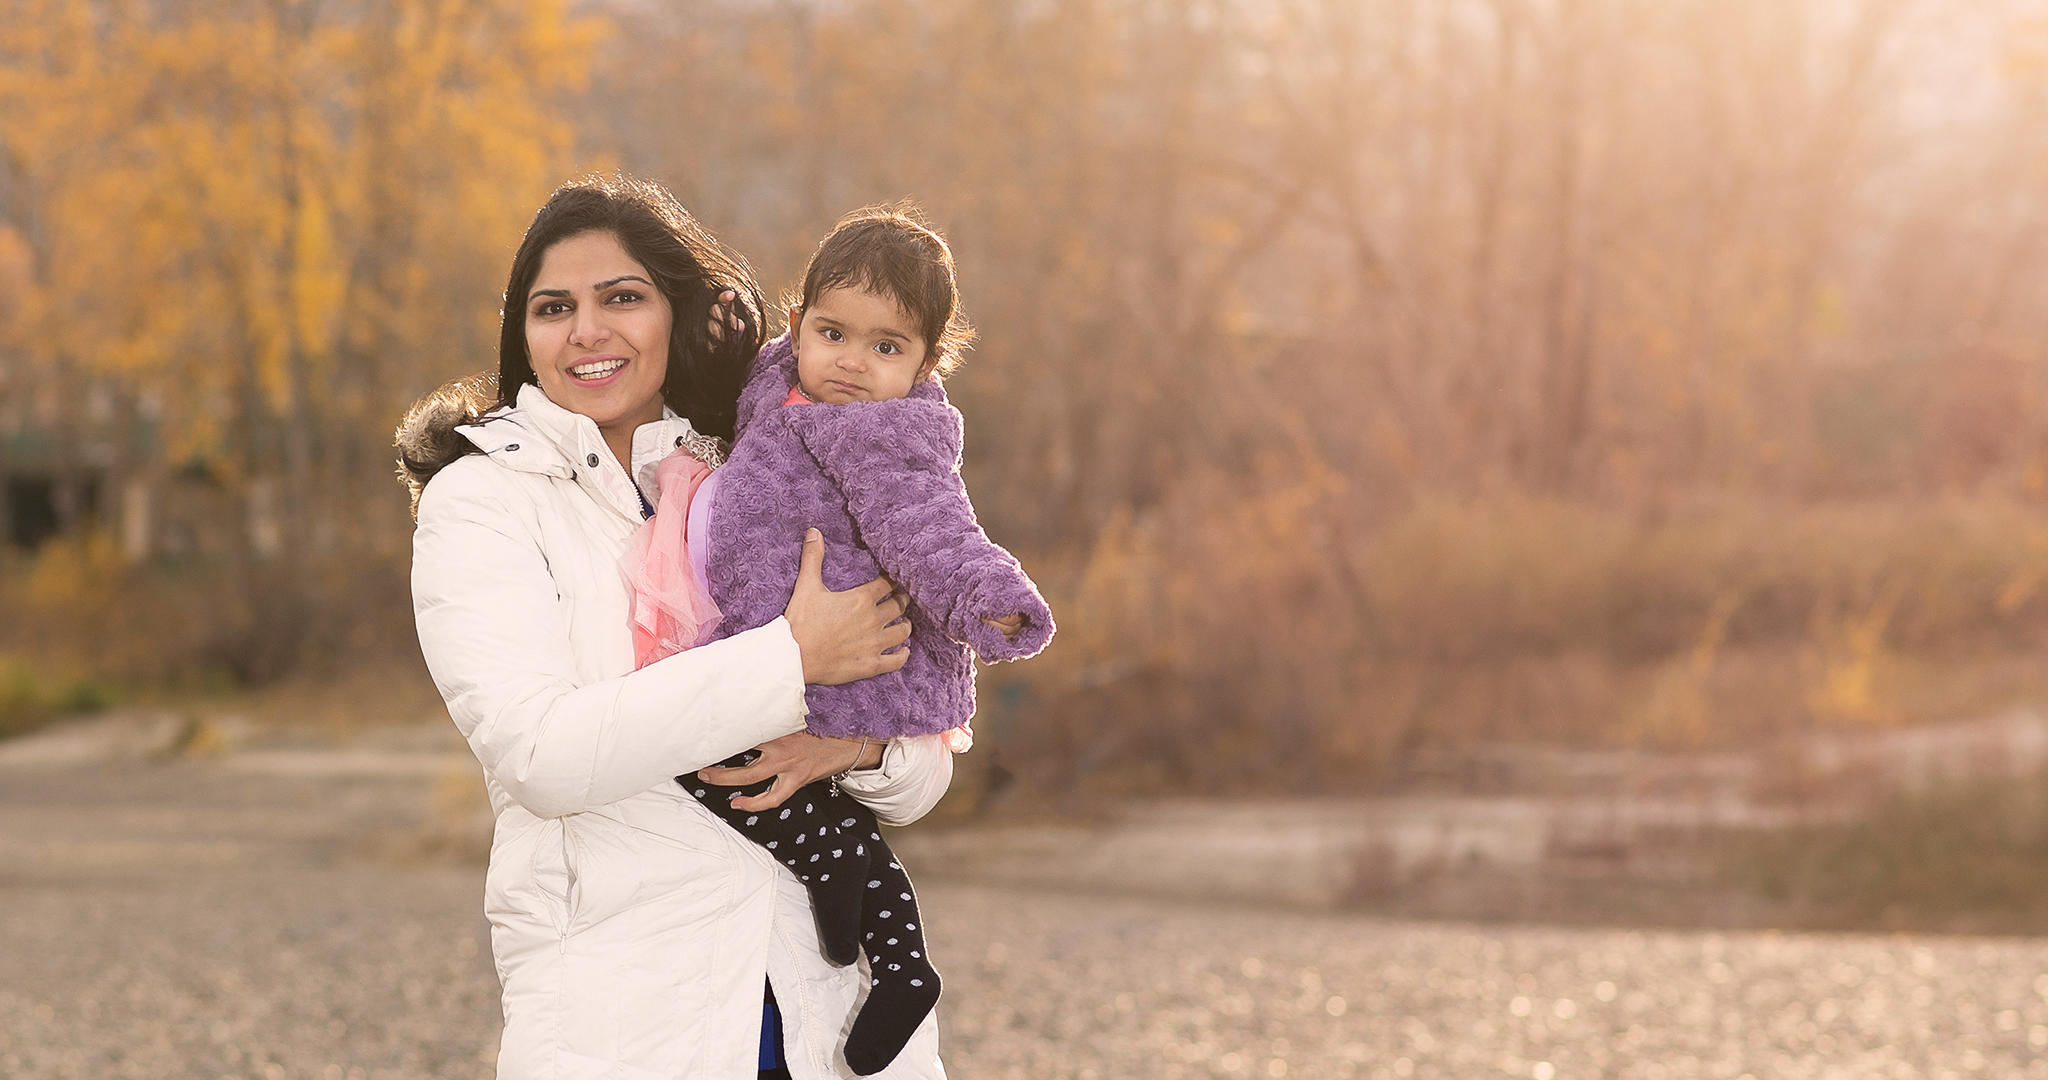 Family photography in Kamloops at 778.538.1406